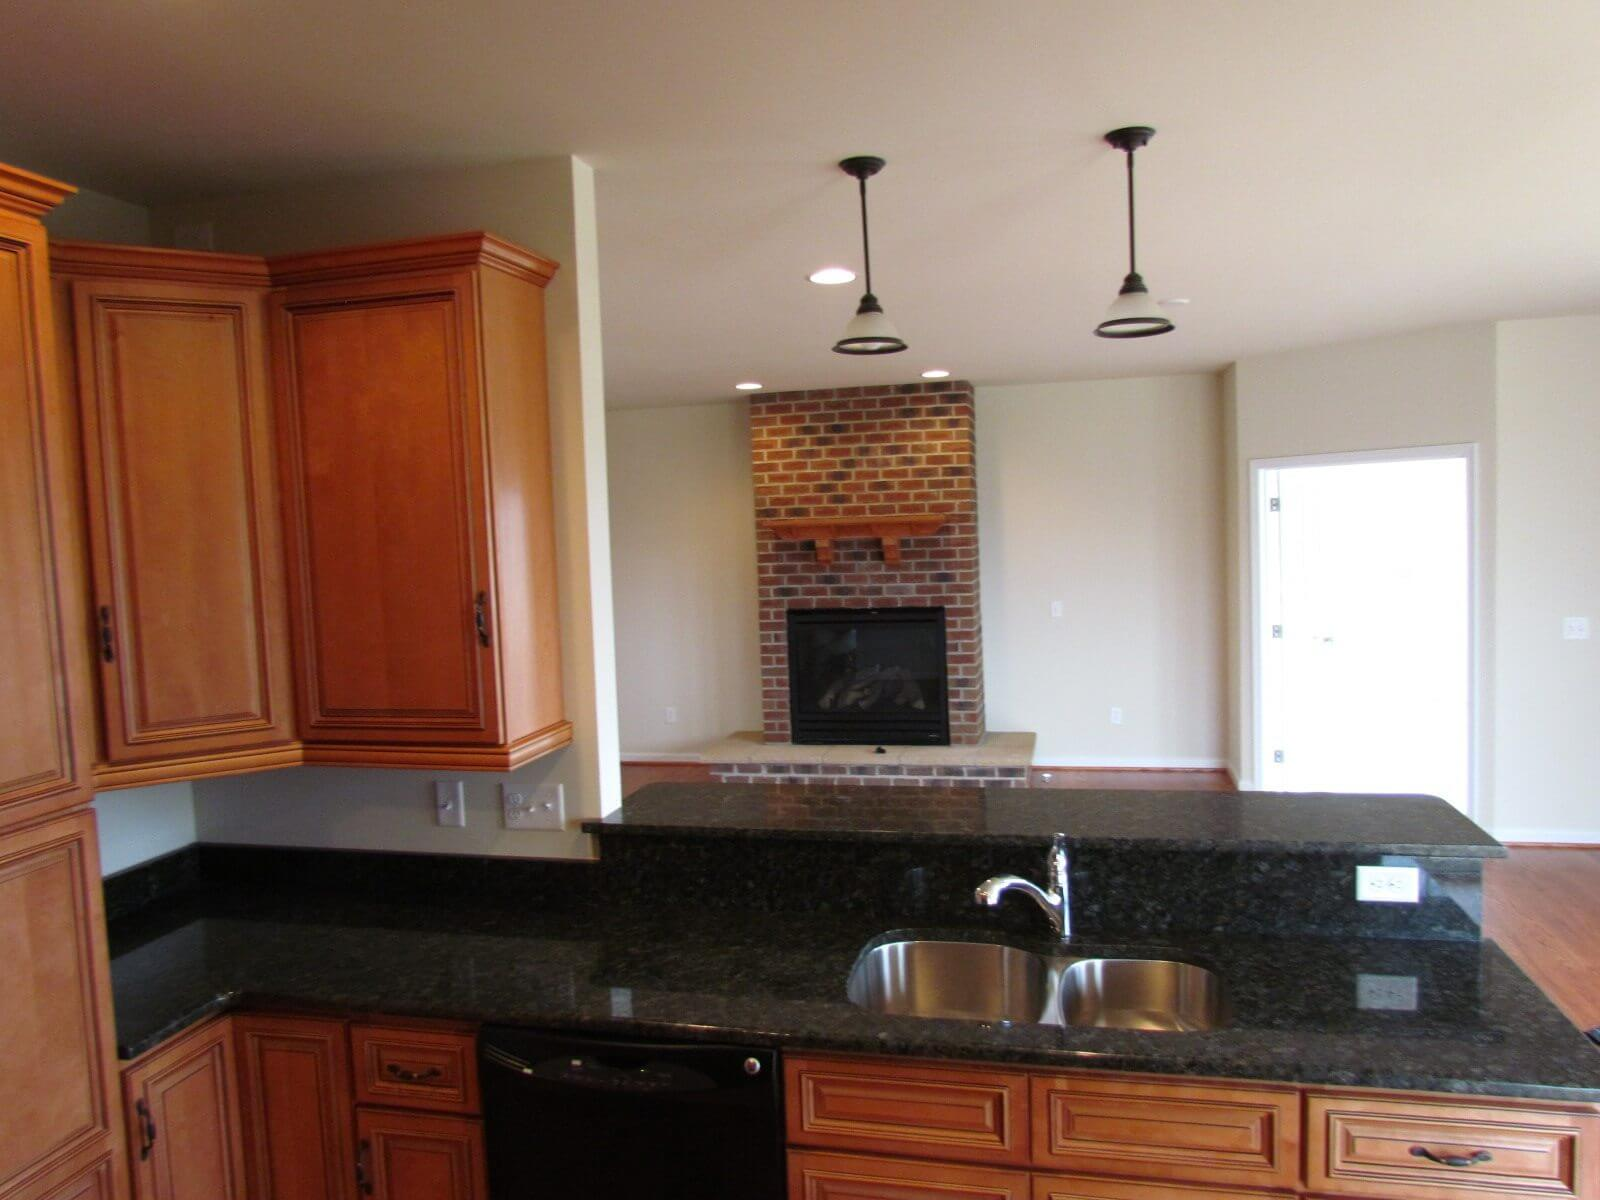 Primrose Custom Home kitchen and fire place